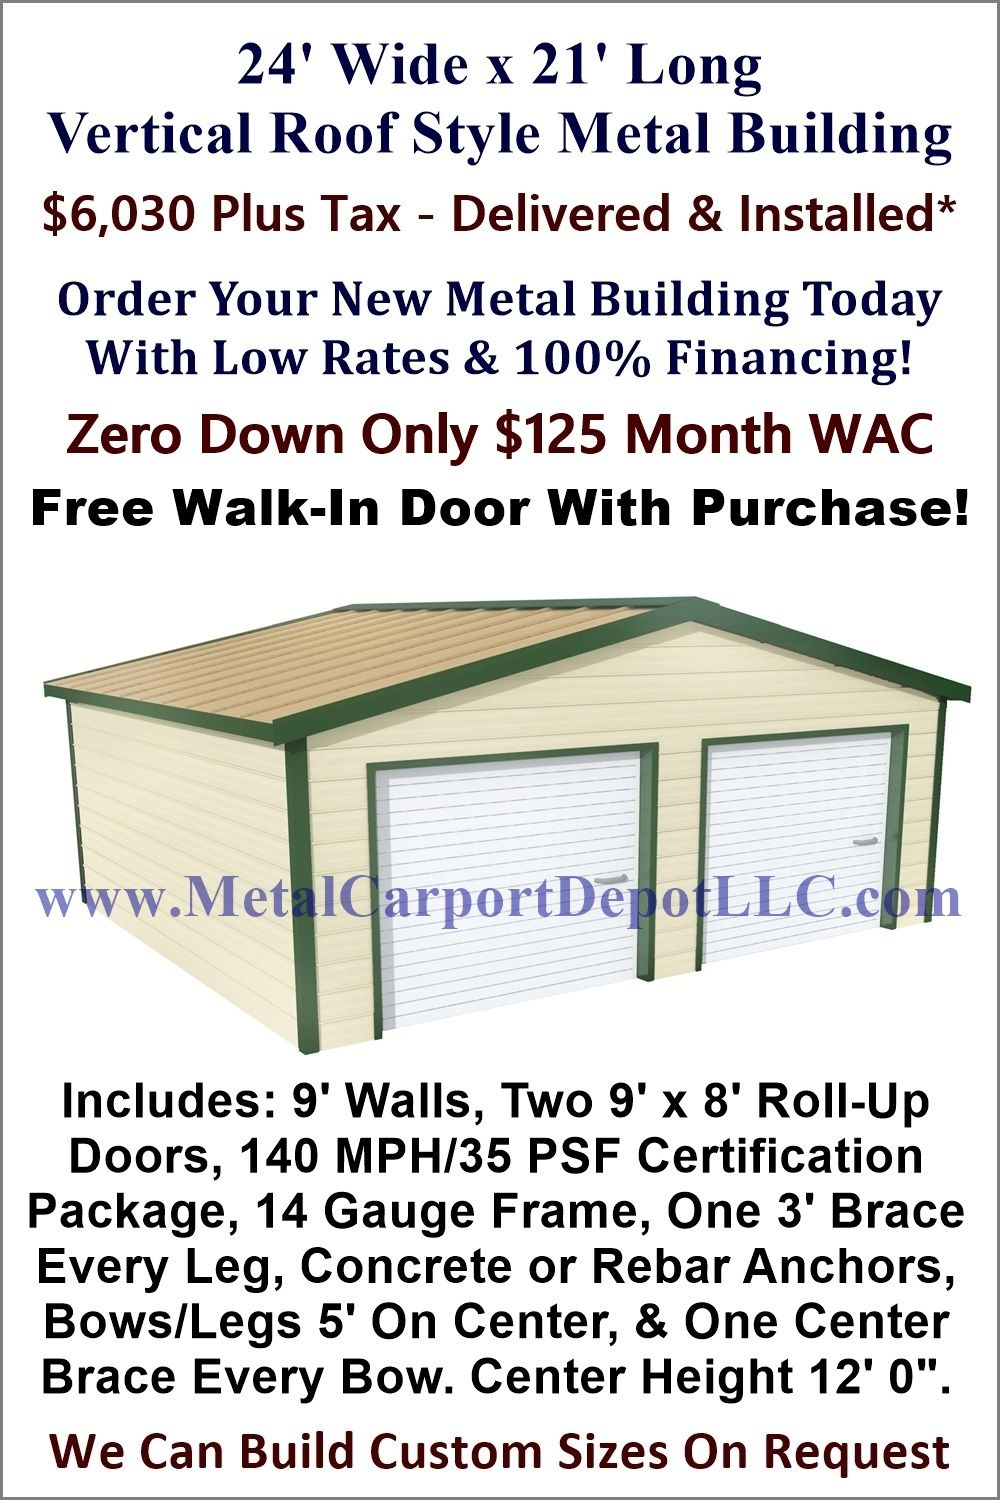 24 X 21 Steel Building Vertical Roof Metal Garage Metal Carport Depot With Images Metal Buildings Roof Styles Roof